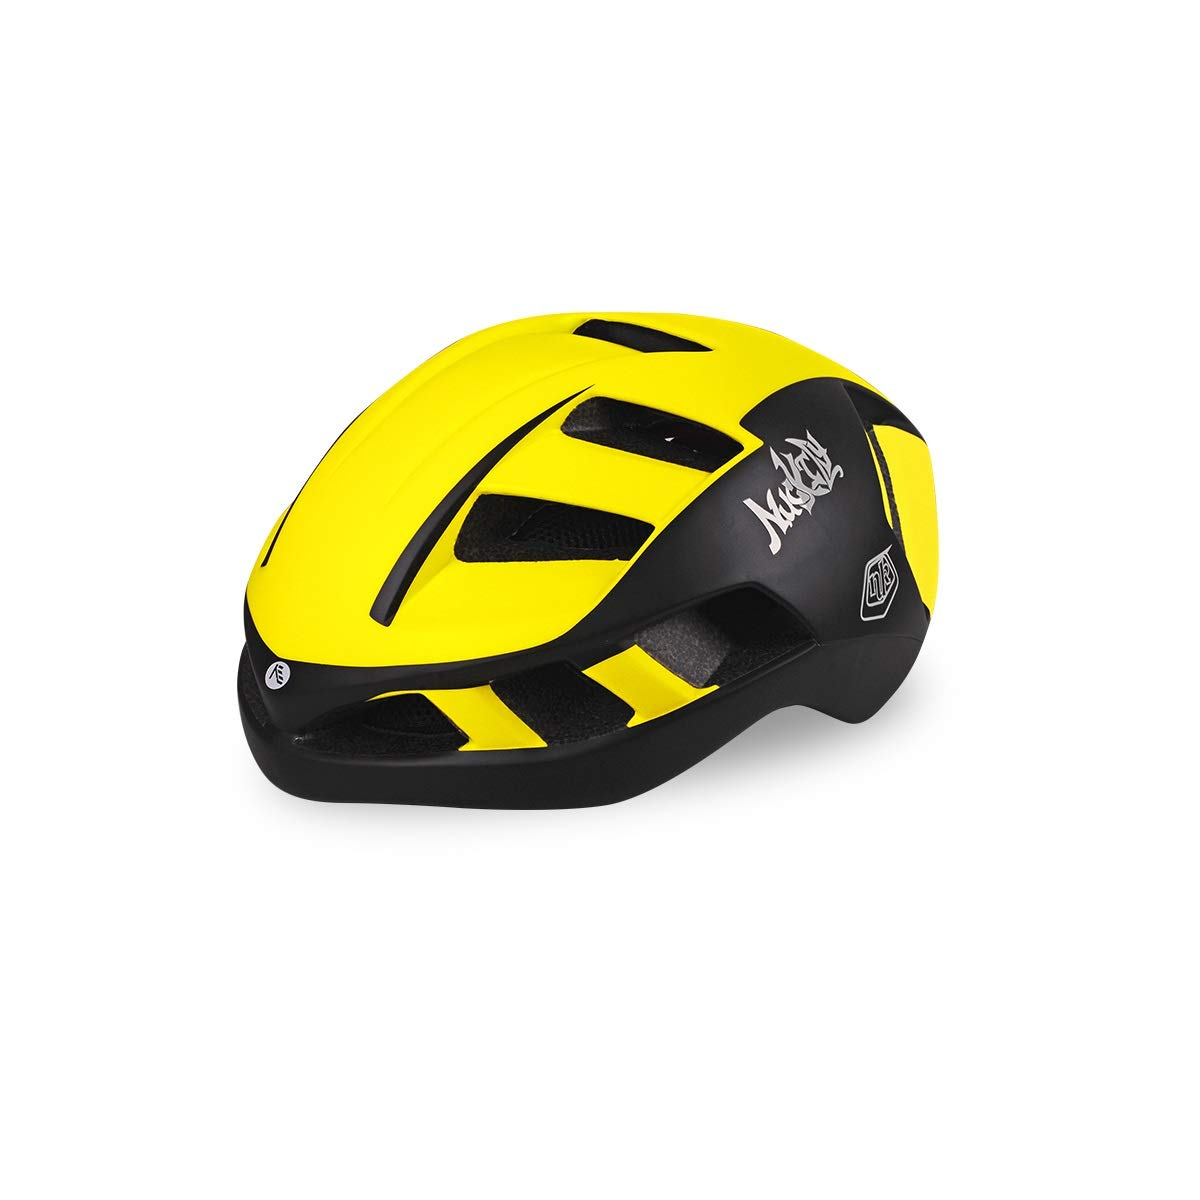 8hawoenju Bike Helmet with in-Molded Reinforcing Skeleton for Added Protection - Adult Size, Comfortable, Lightweight, Breathable (Color : Yellow, Size : L)